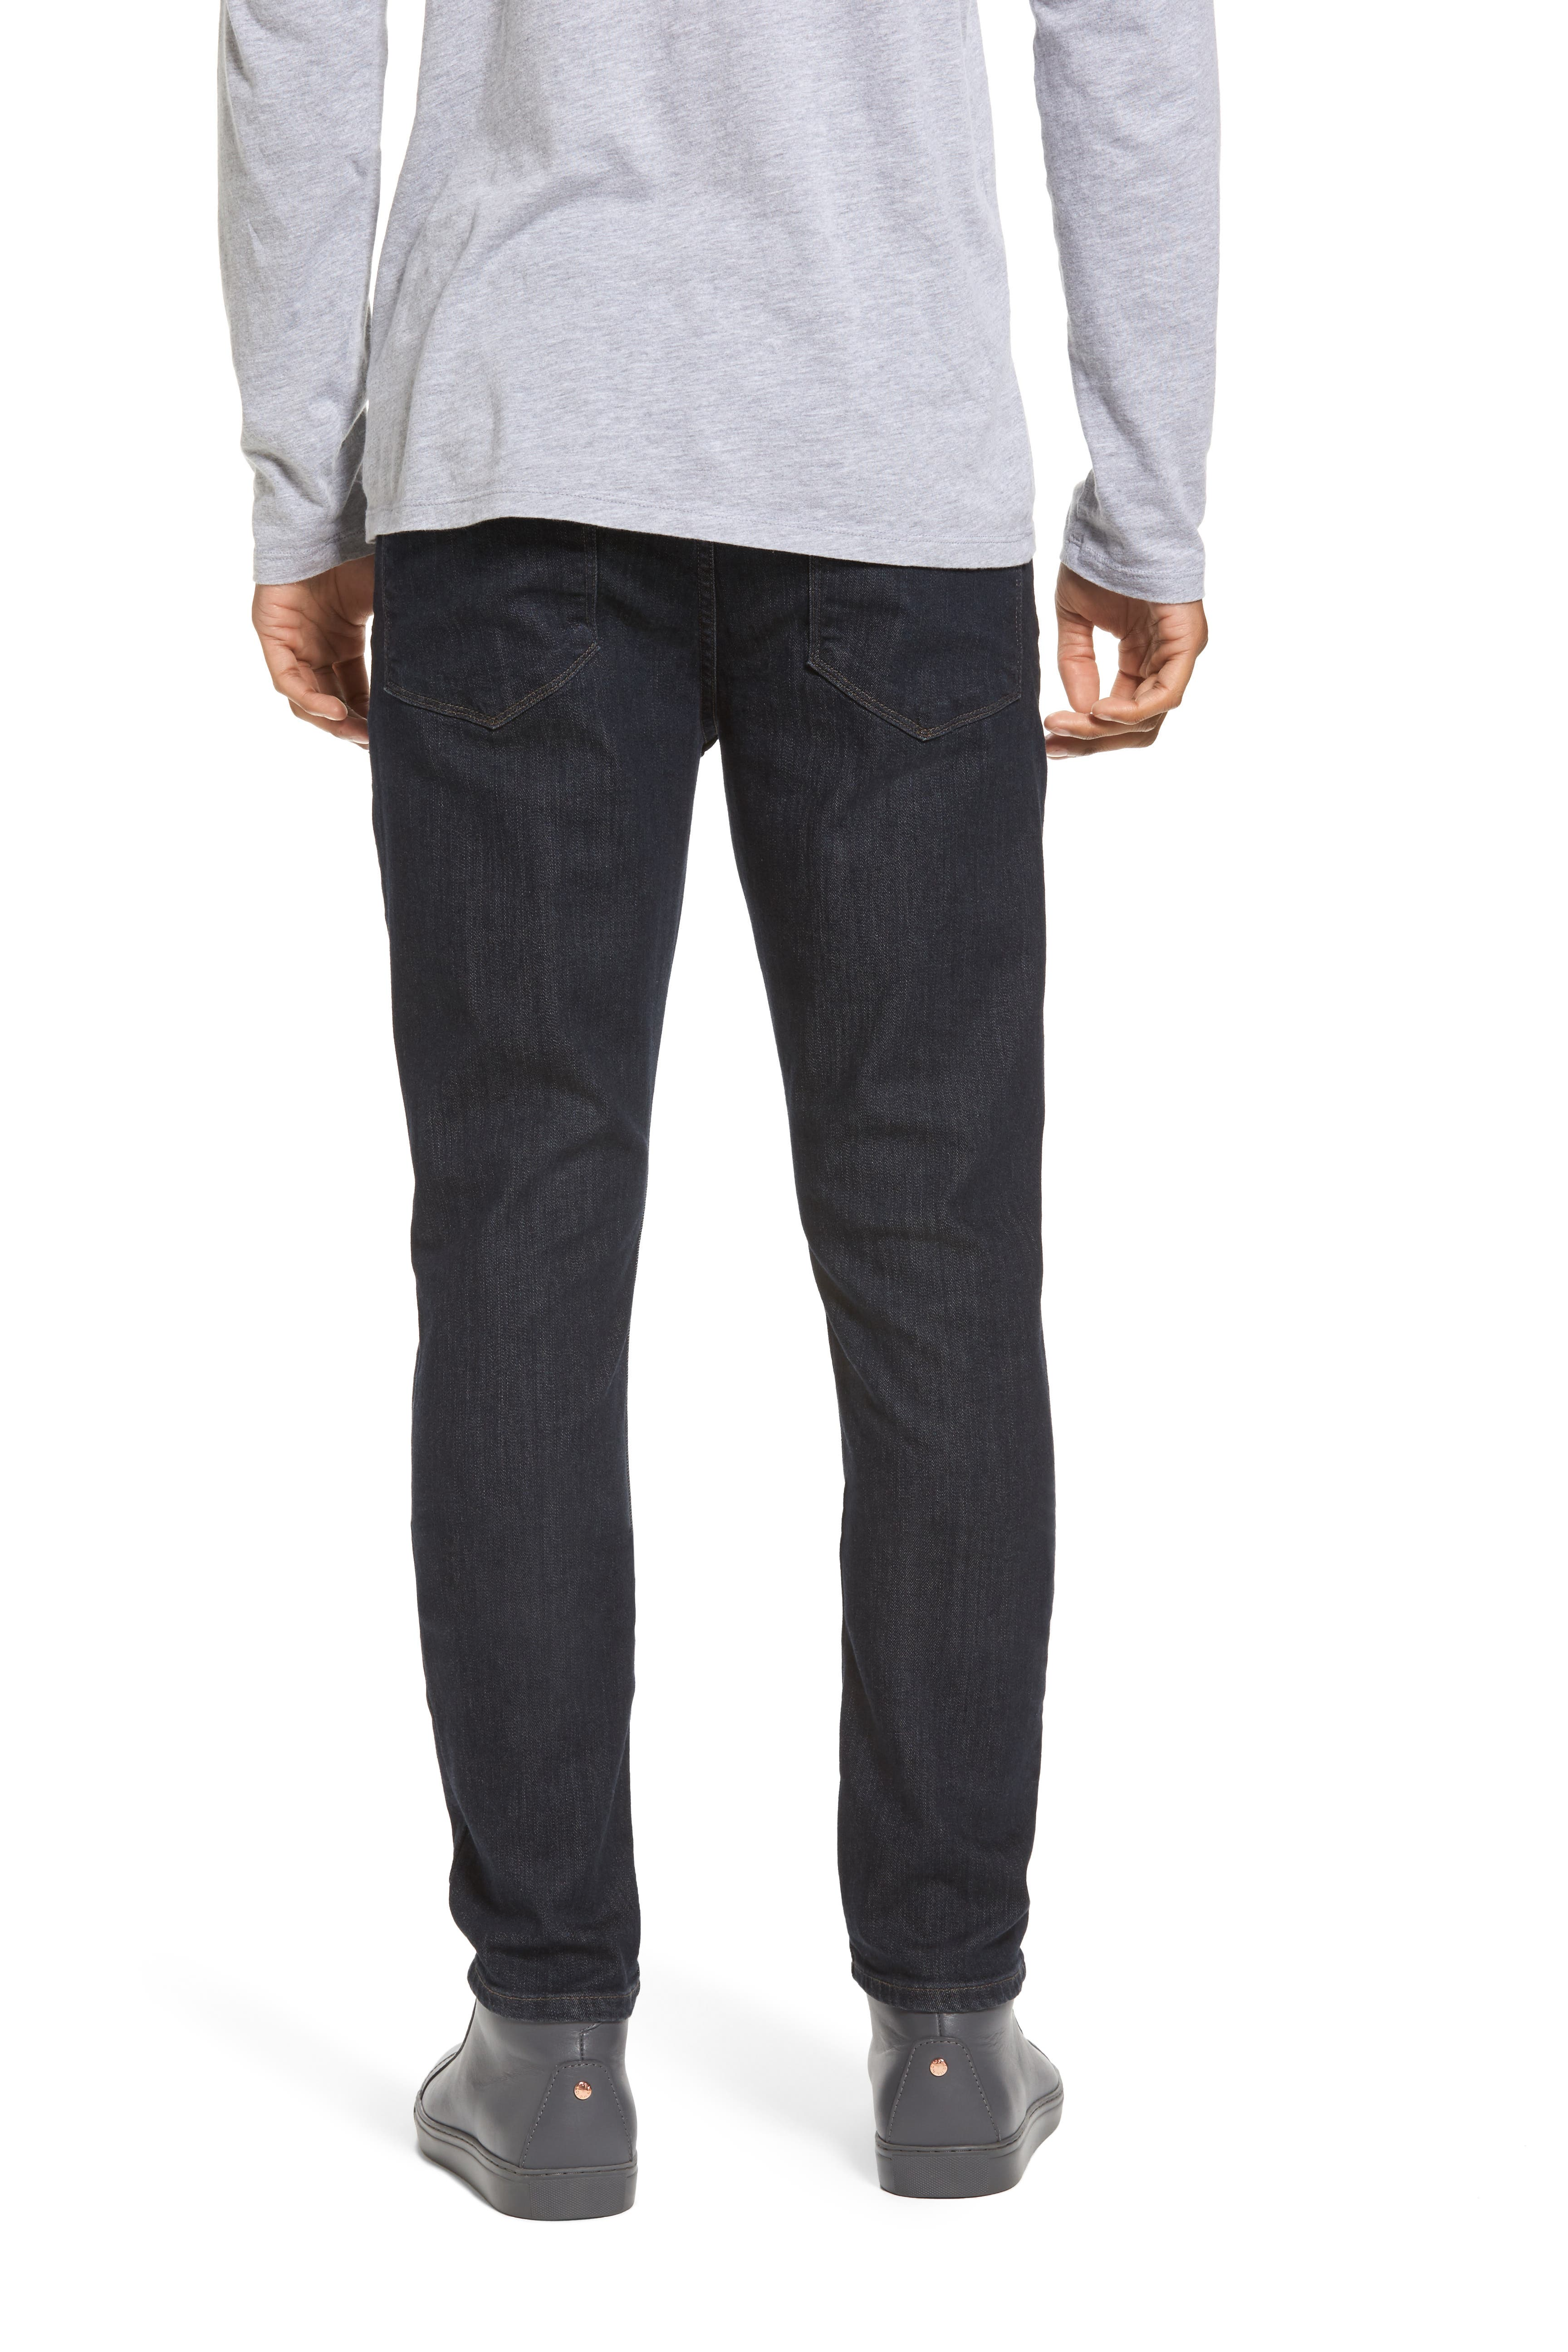 Legacy - Croft Skinny Fit Jeans,                             Alternate thumbnail 2, color,                             400